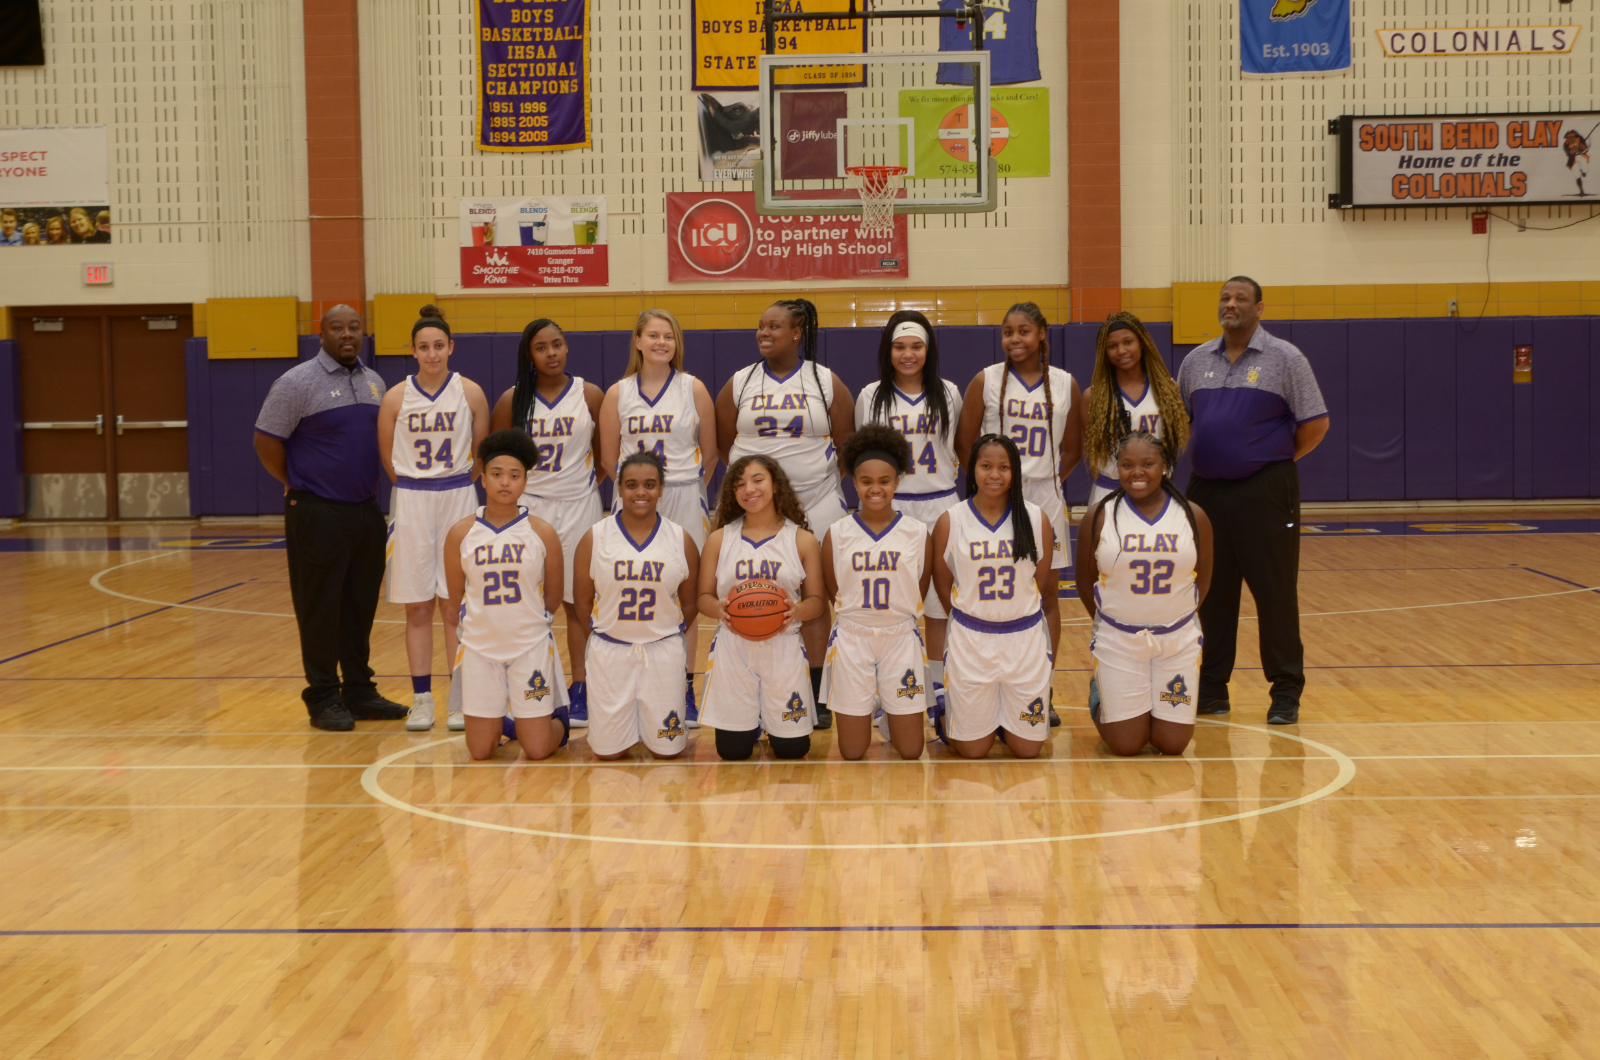 Girls Basketball to be part of Organ Donor Classic